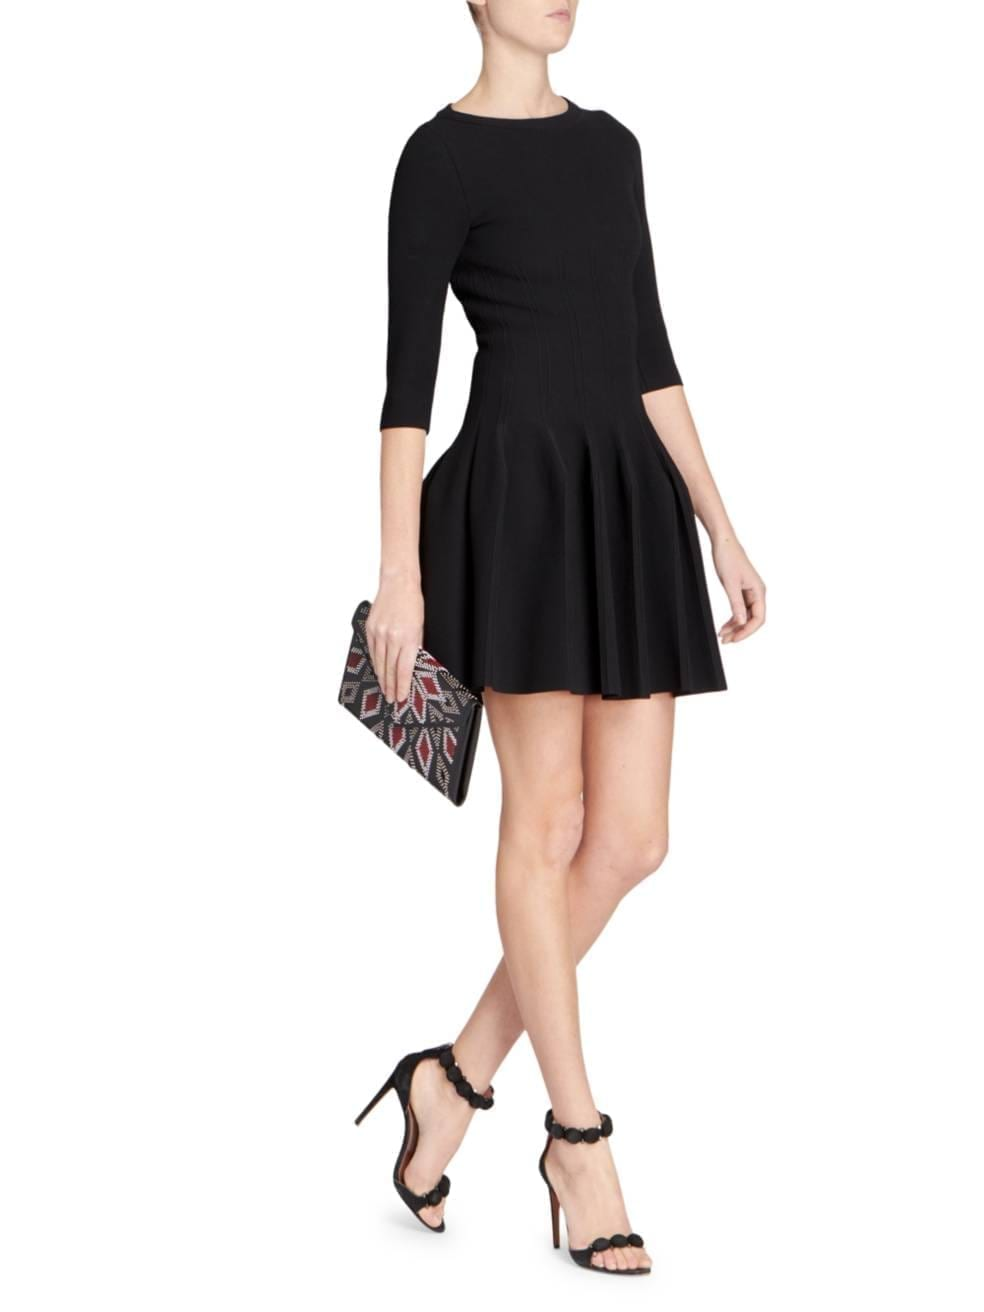 ALAÏA Editions Piqué Knit Fit-&-Flare Dress